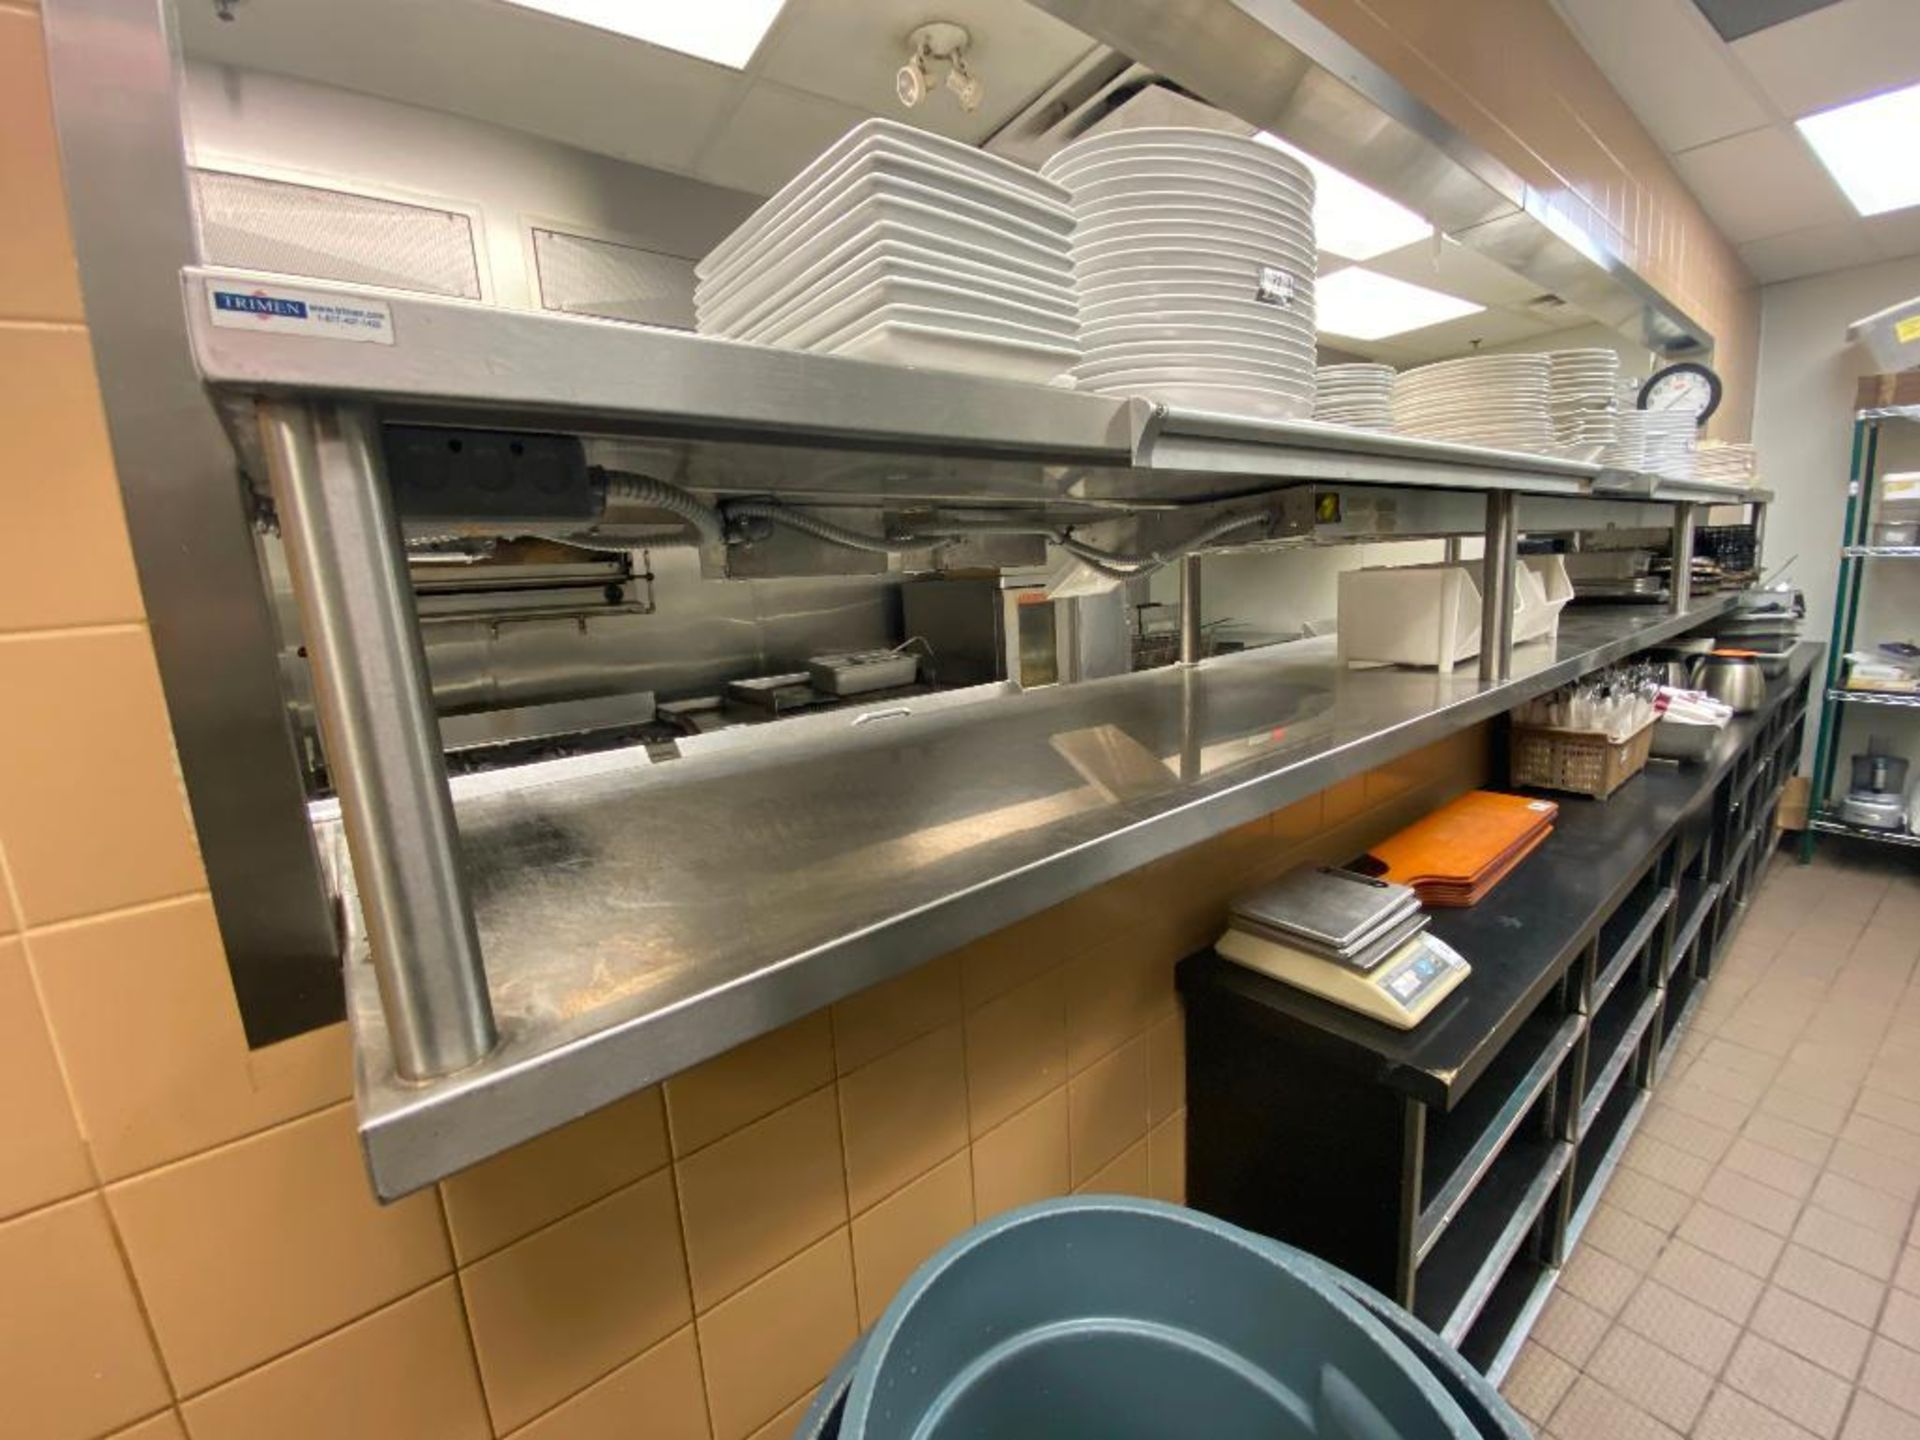 APPROX 14' STAINLESS STEEL OVER WITH 2 HATCO GLO-RAY FOOD WARMERS - NOTE: REQUIRES REMOVAL FROM WALL - Image 3 of 6